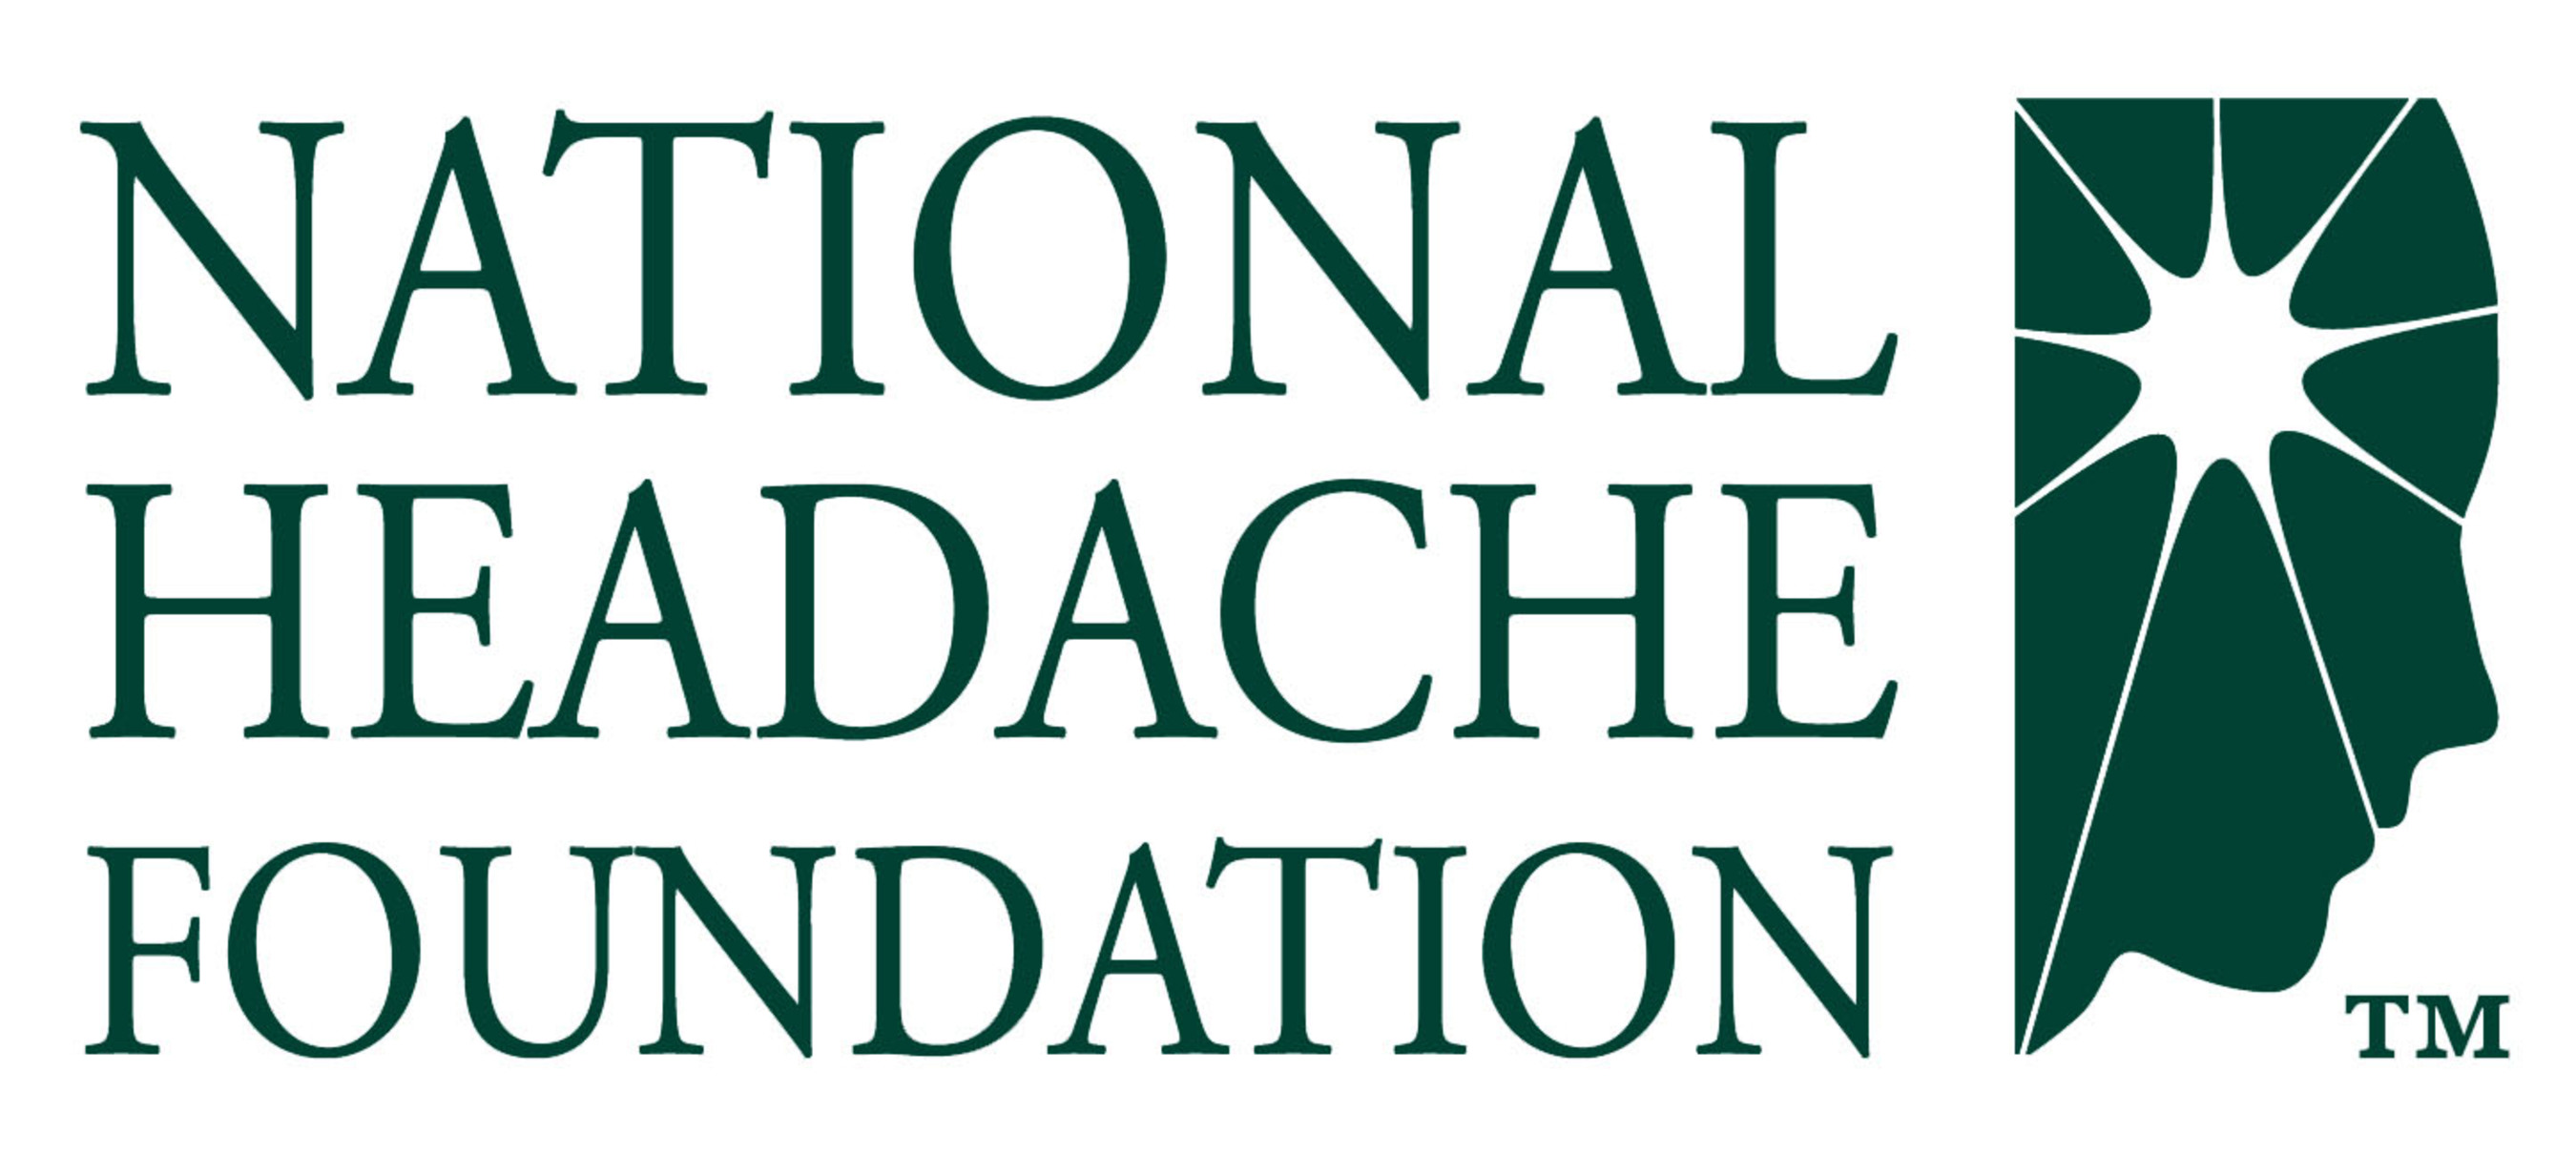 National Headache Foundation offentliggør modtageren af Seymour Diamond, M.D. Lectureship for 2015